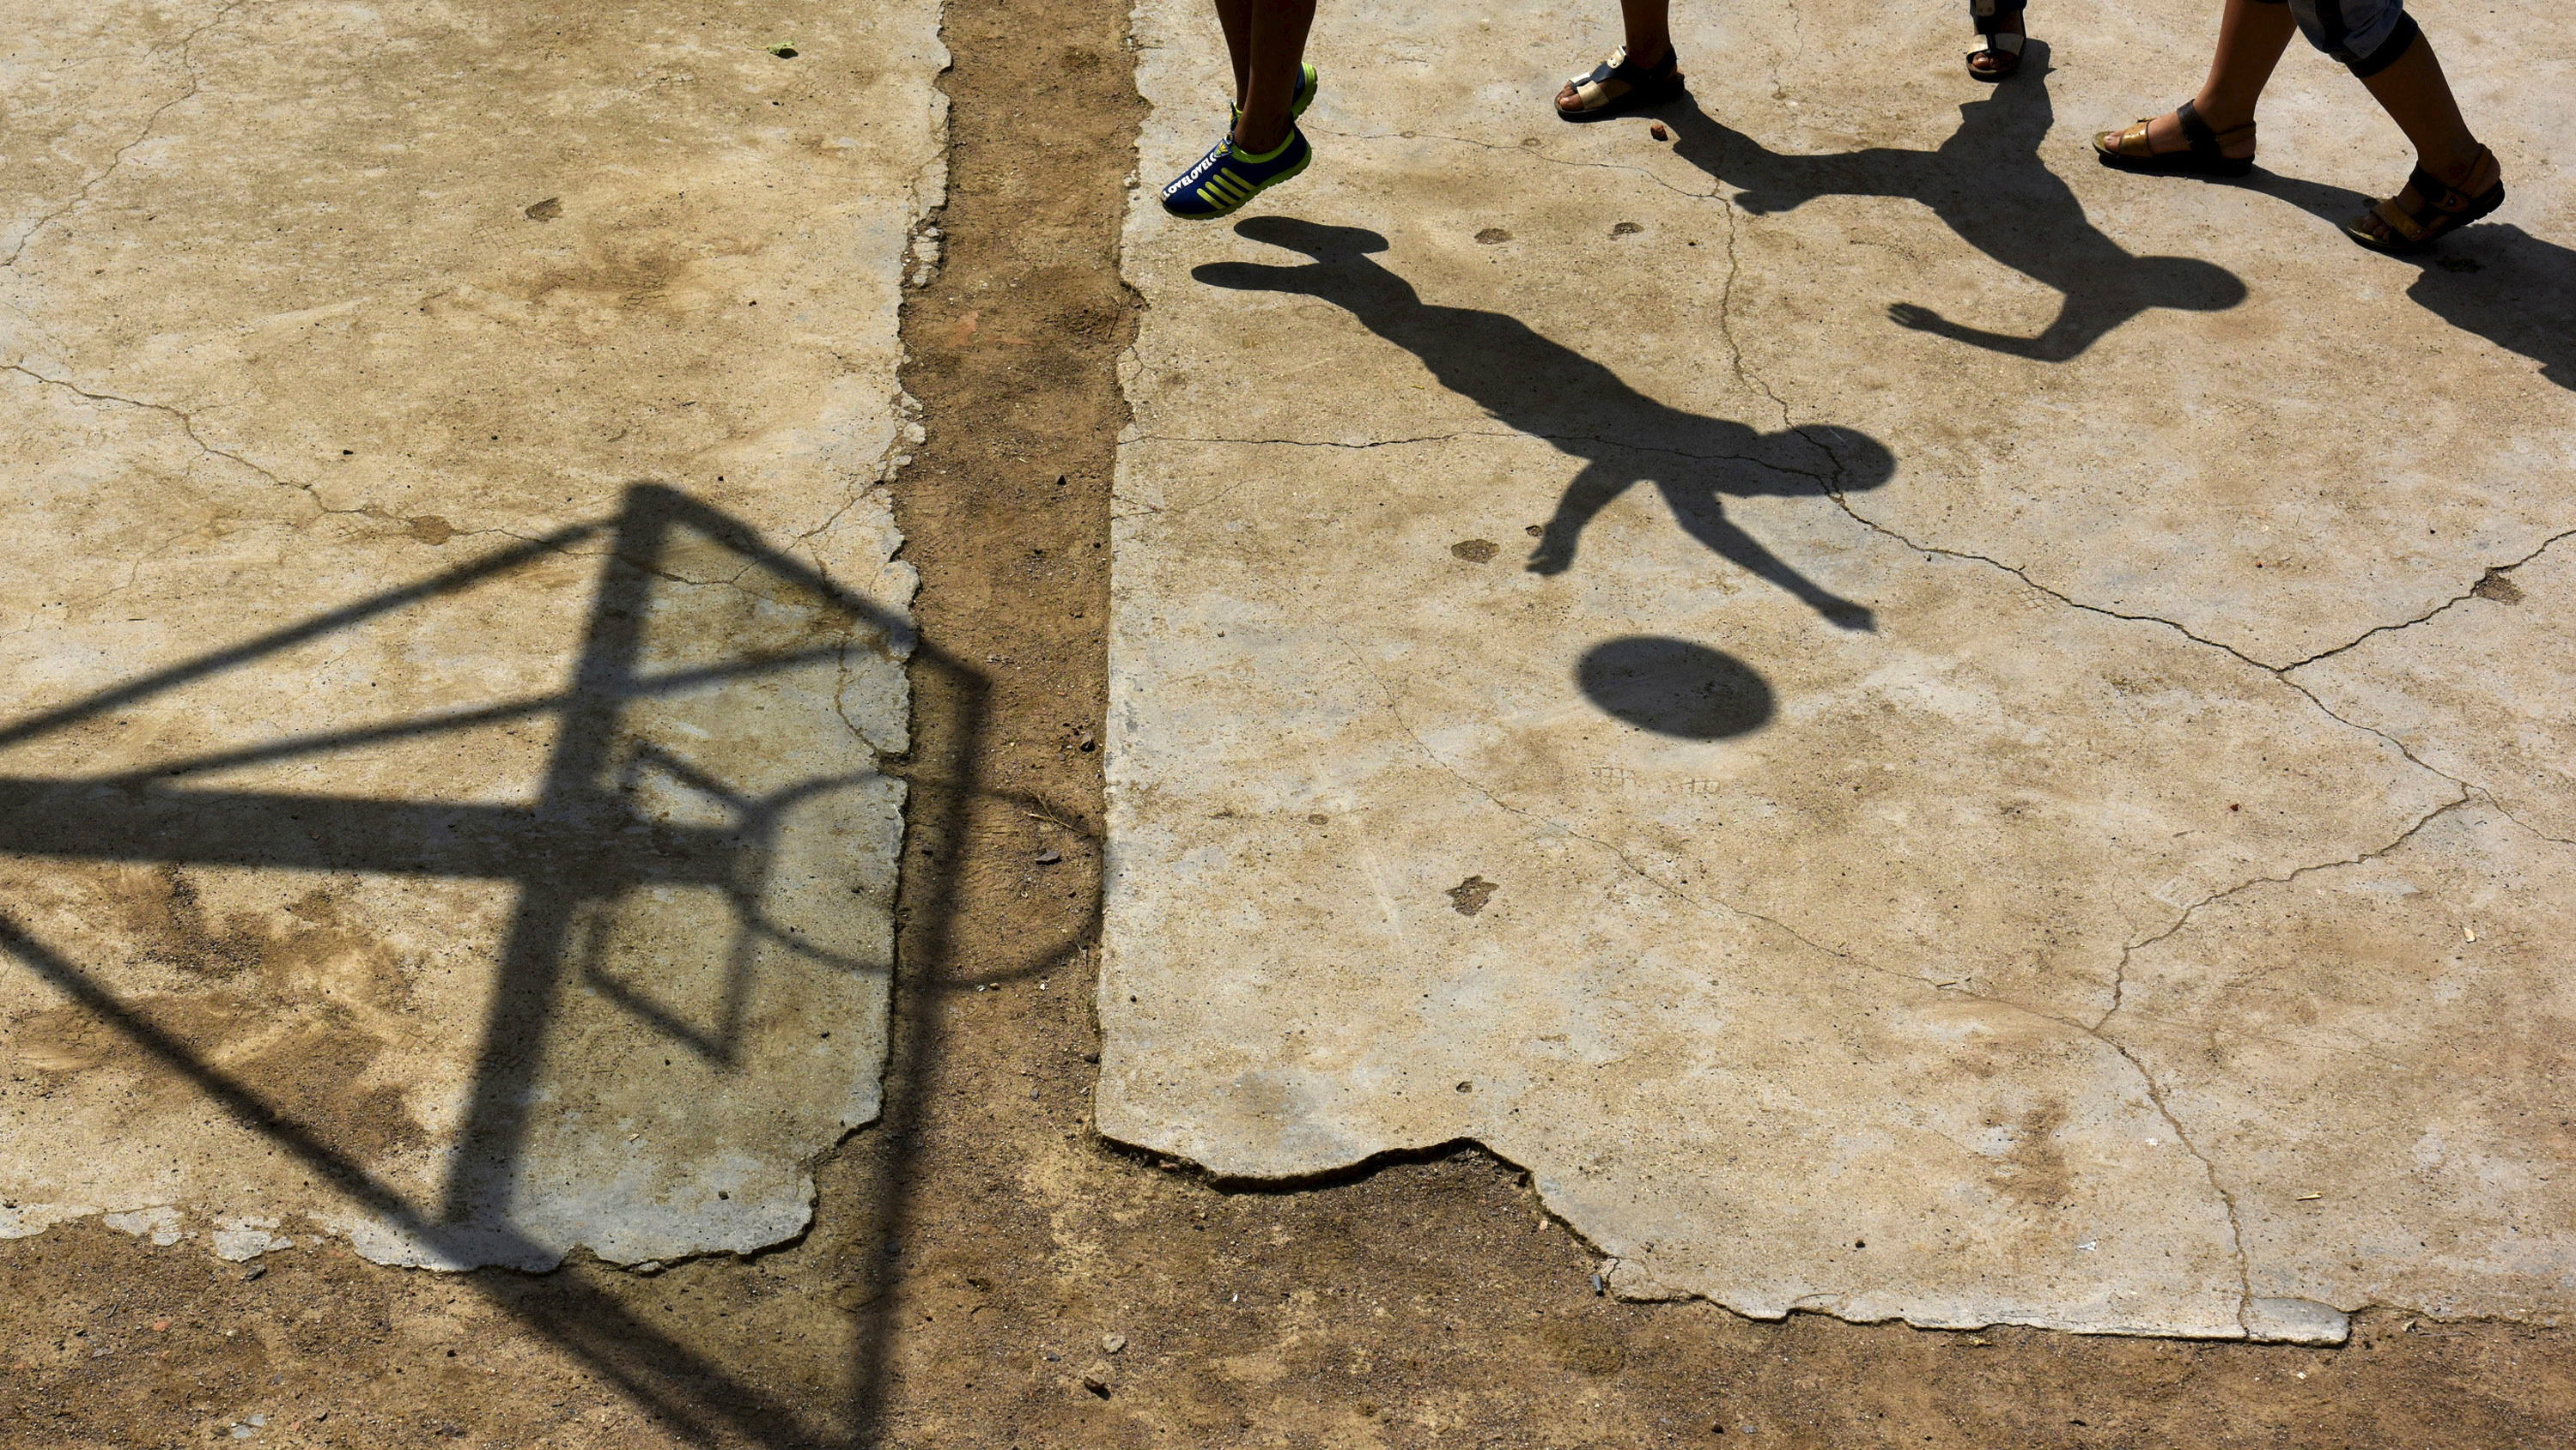 Students cast shadows as they play basketball at a playground at Dalu primary school in Gucheng township of Hefei, Anhui province, China, September 8, 2015.